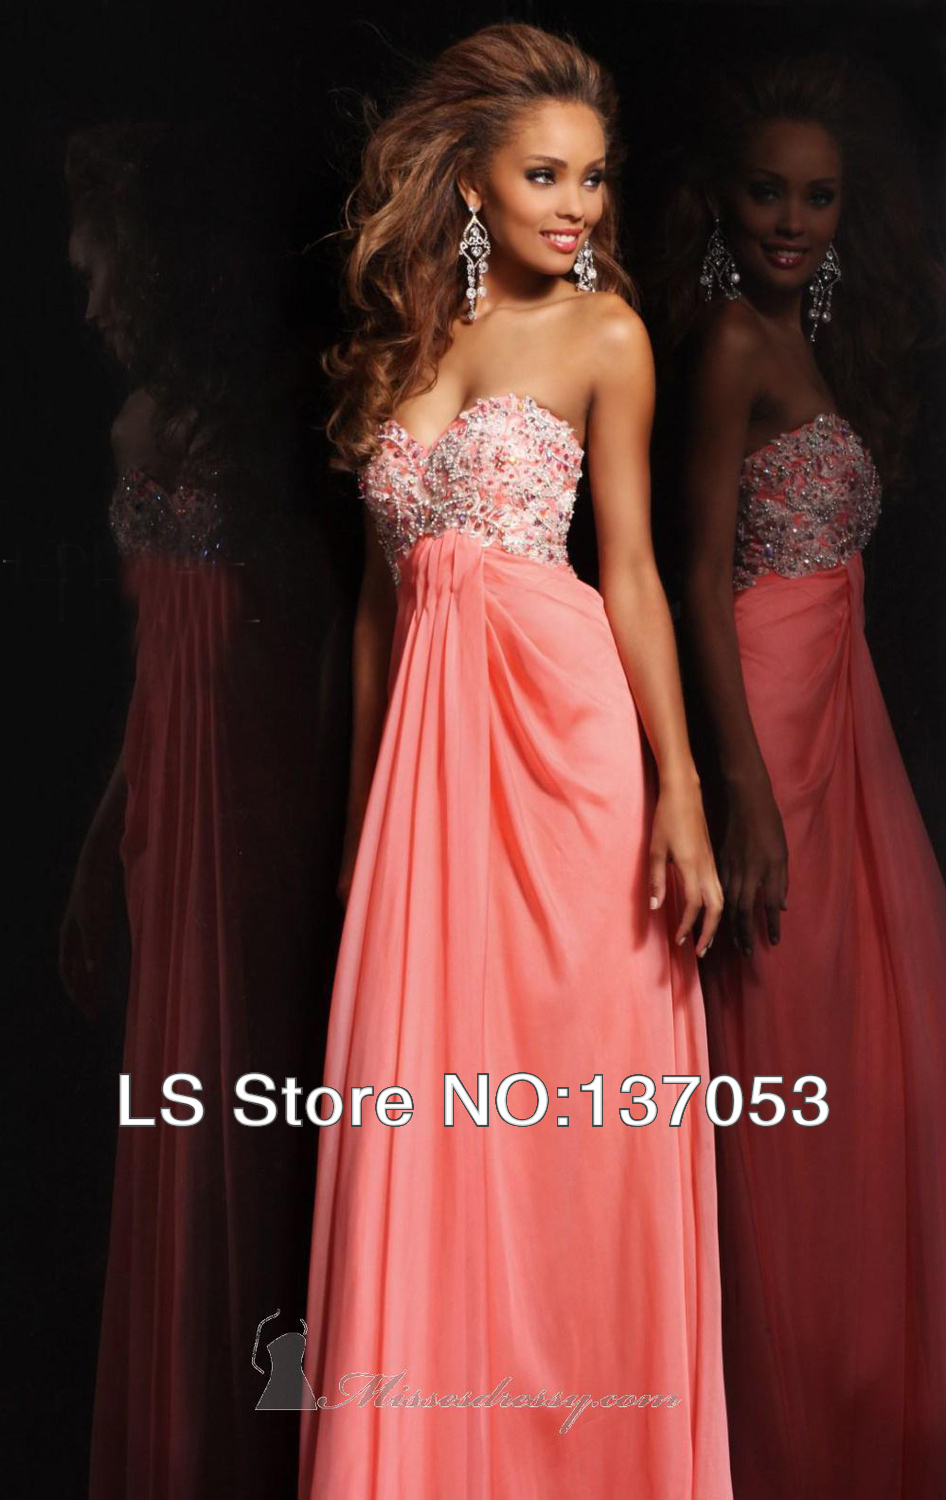 2014 Sweetheart Chiffon Sweetheart Beaded Crystal Floor Length Baby Pink Prom Dresses-in Prom Dresses from Apparel & Accessories on Aliexpress.com